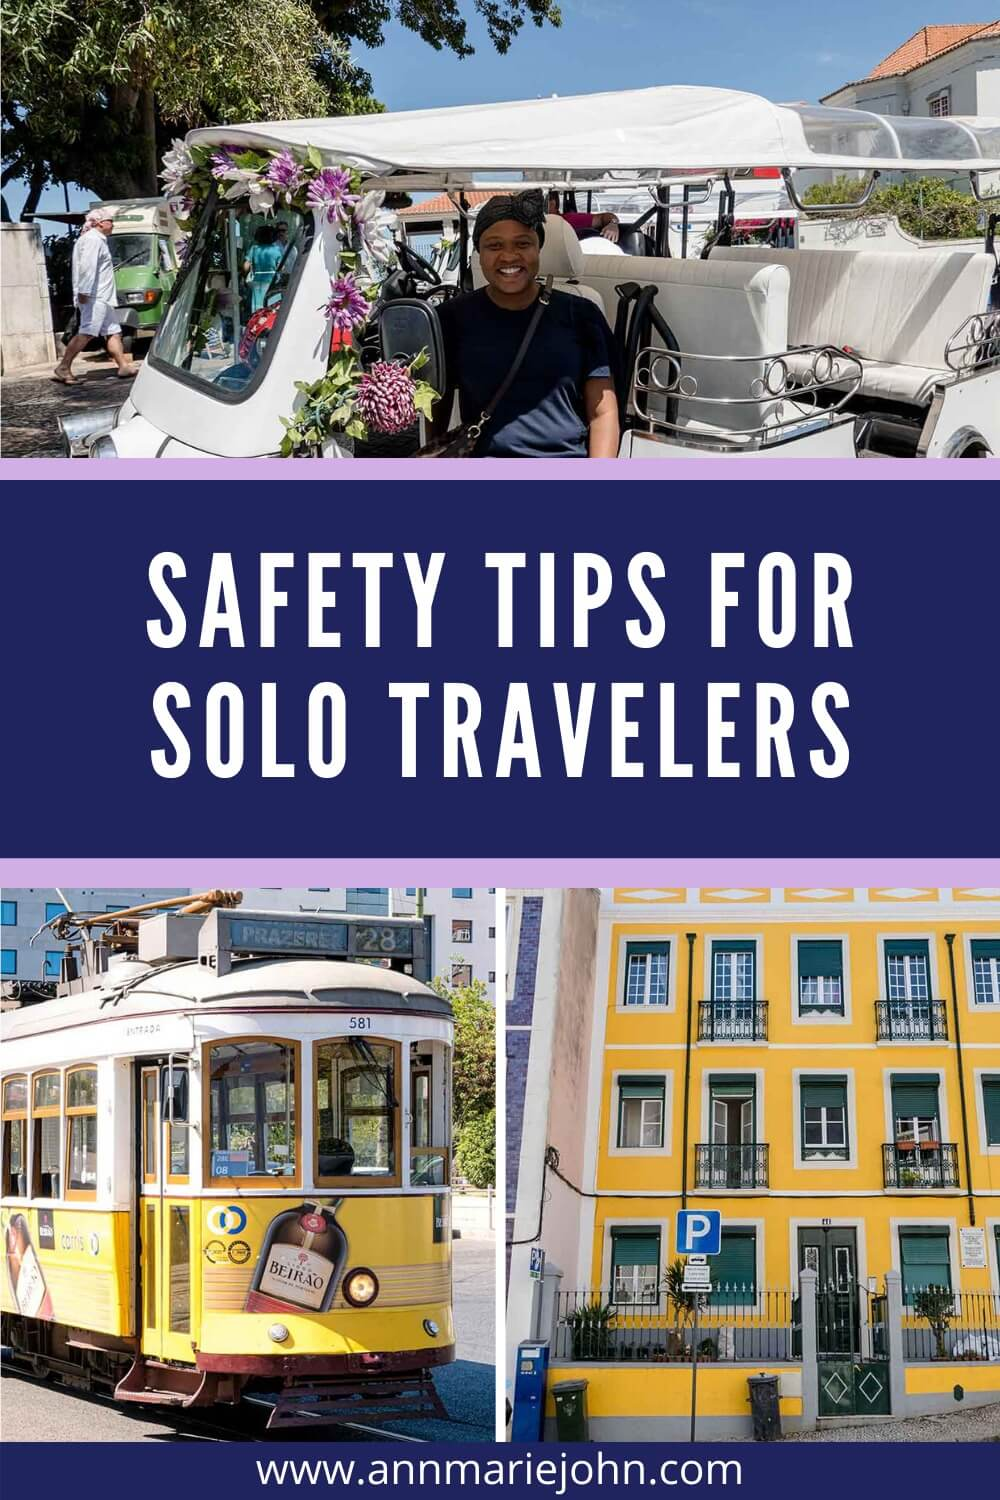 Safety tips for solo travelers